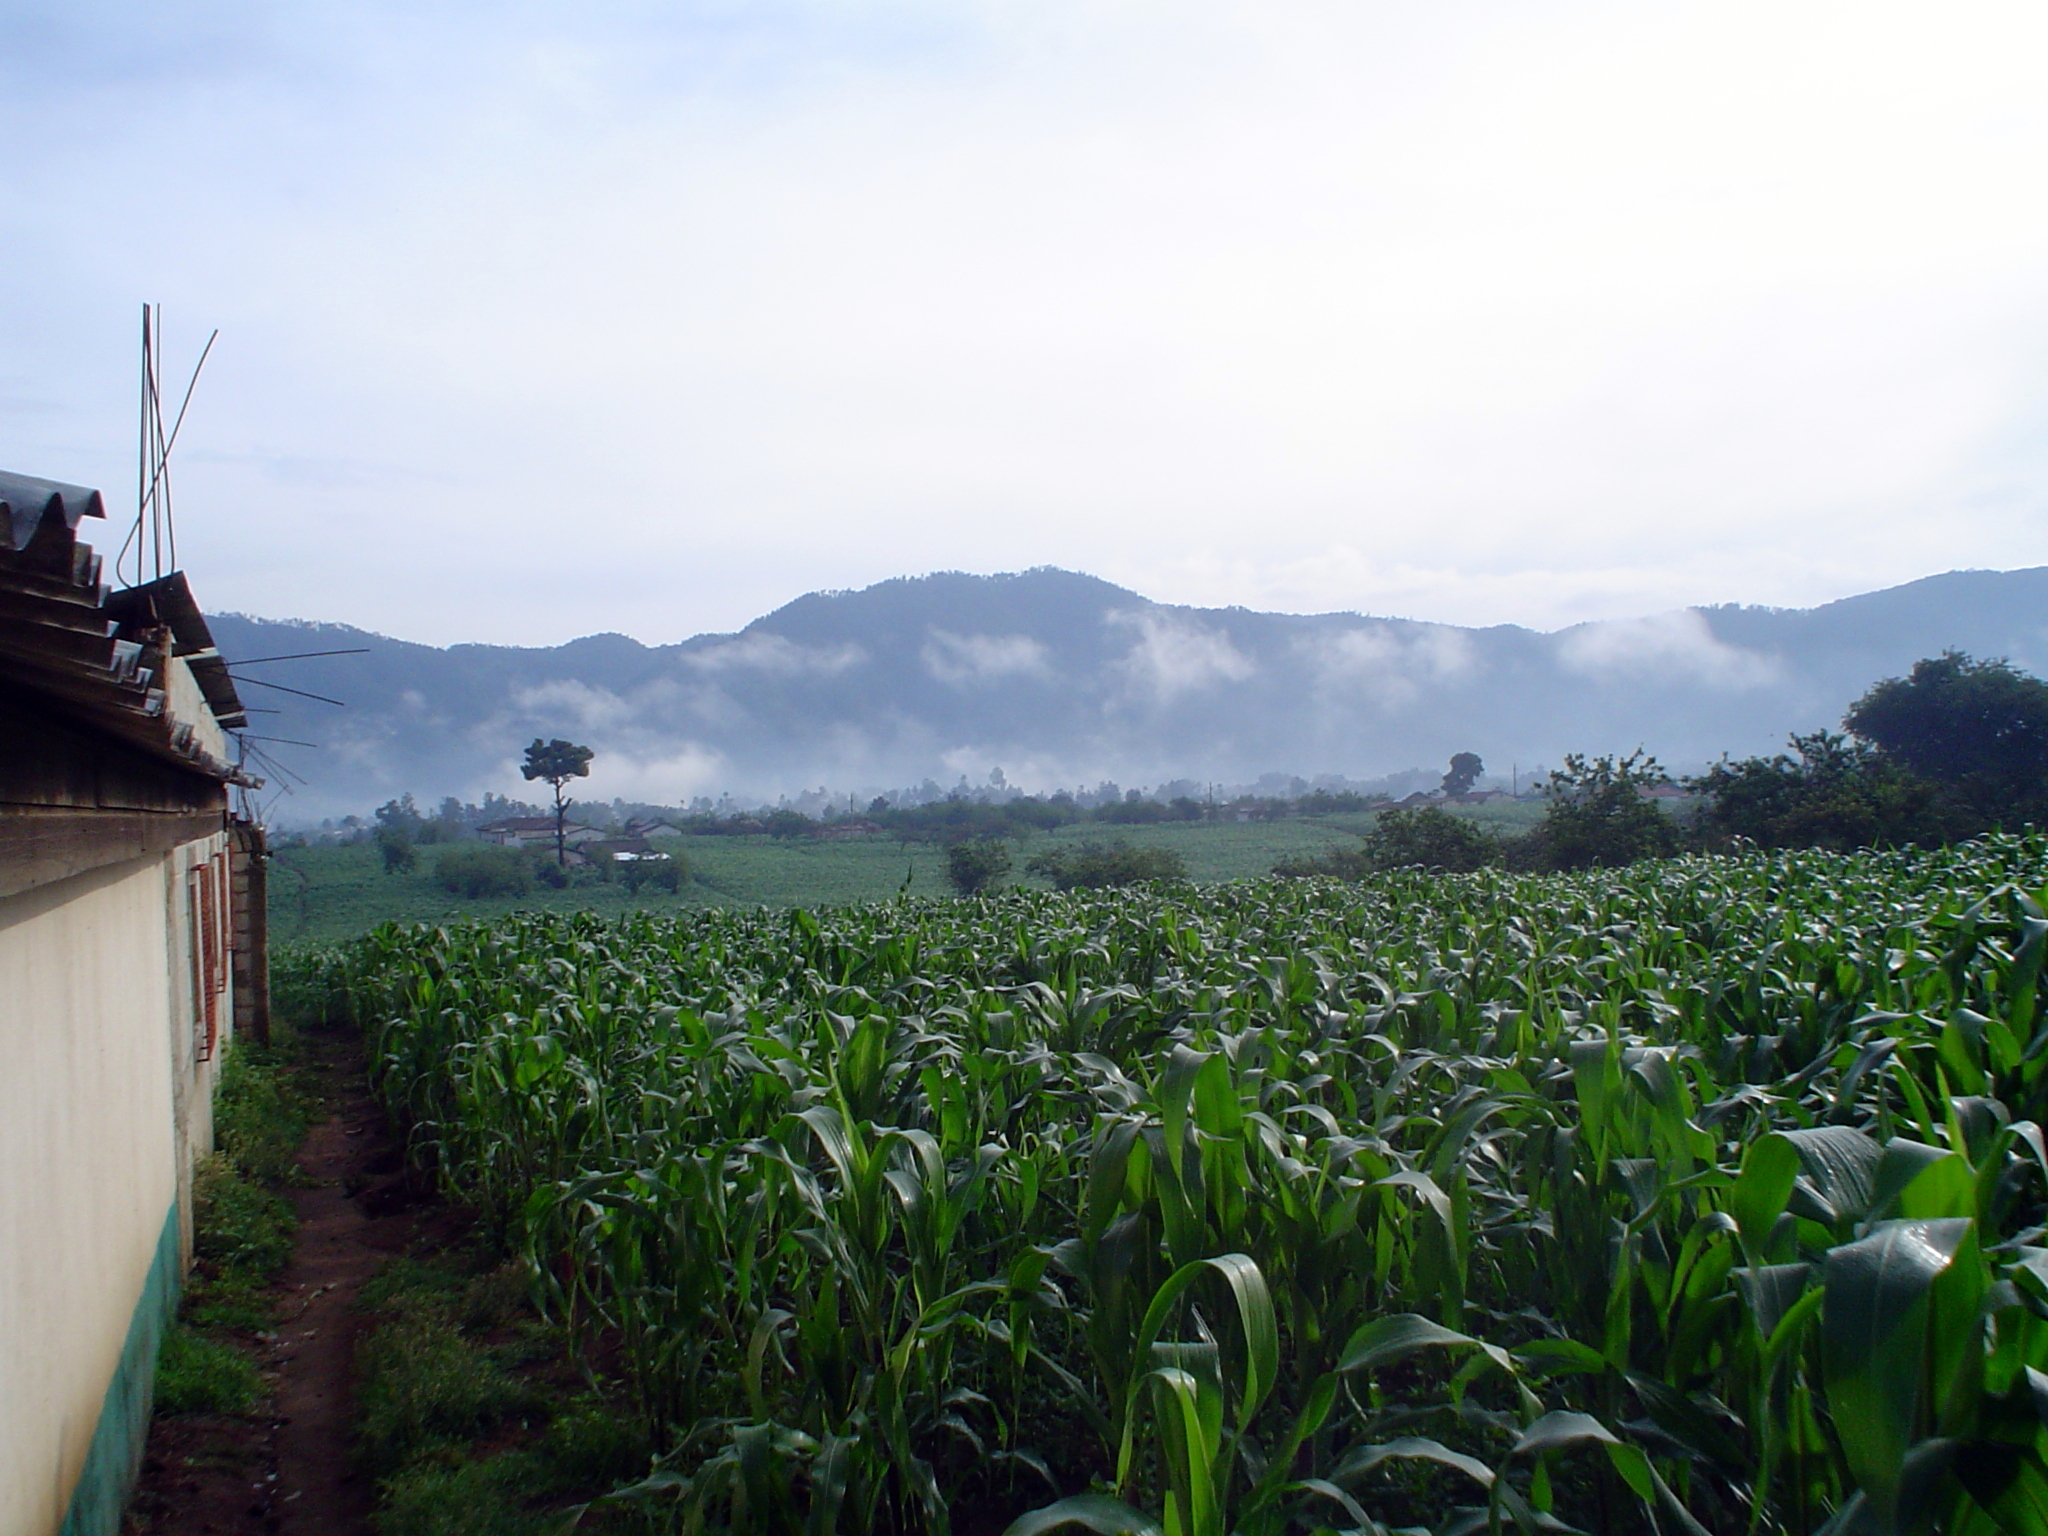 El campo  or the countryside outside of village where many focus group interviews took place.